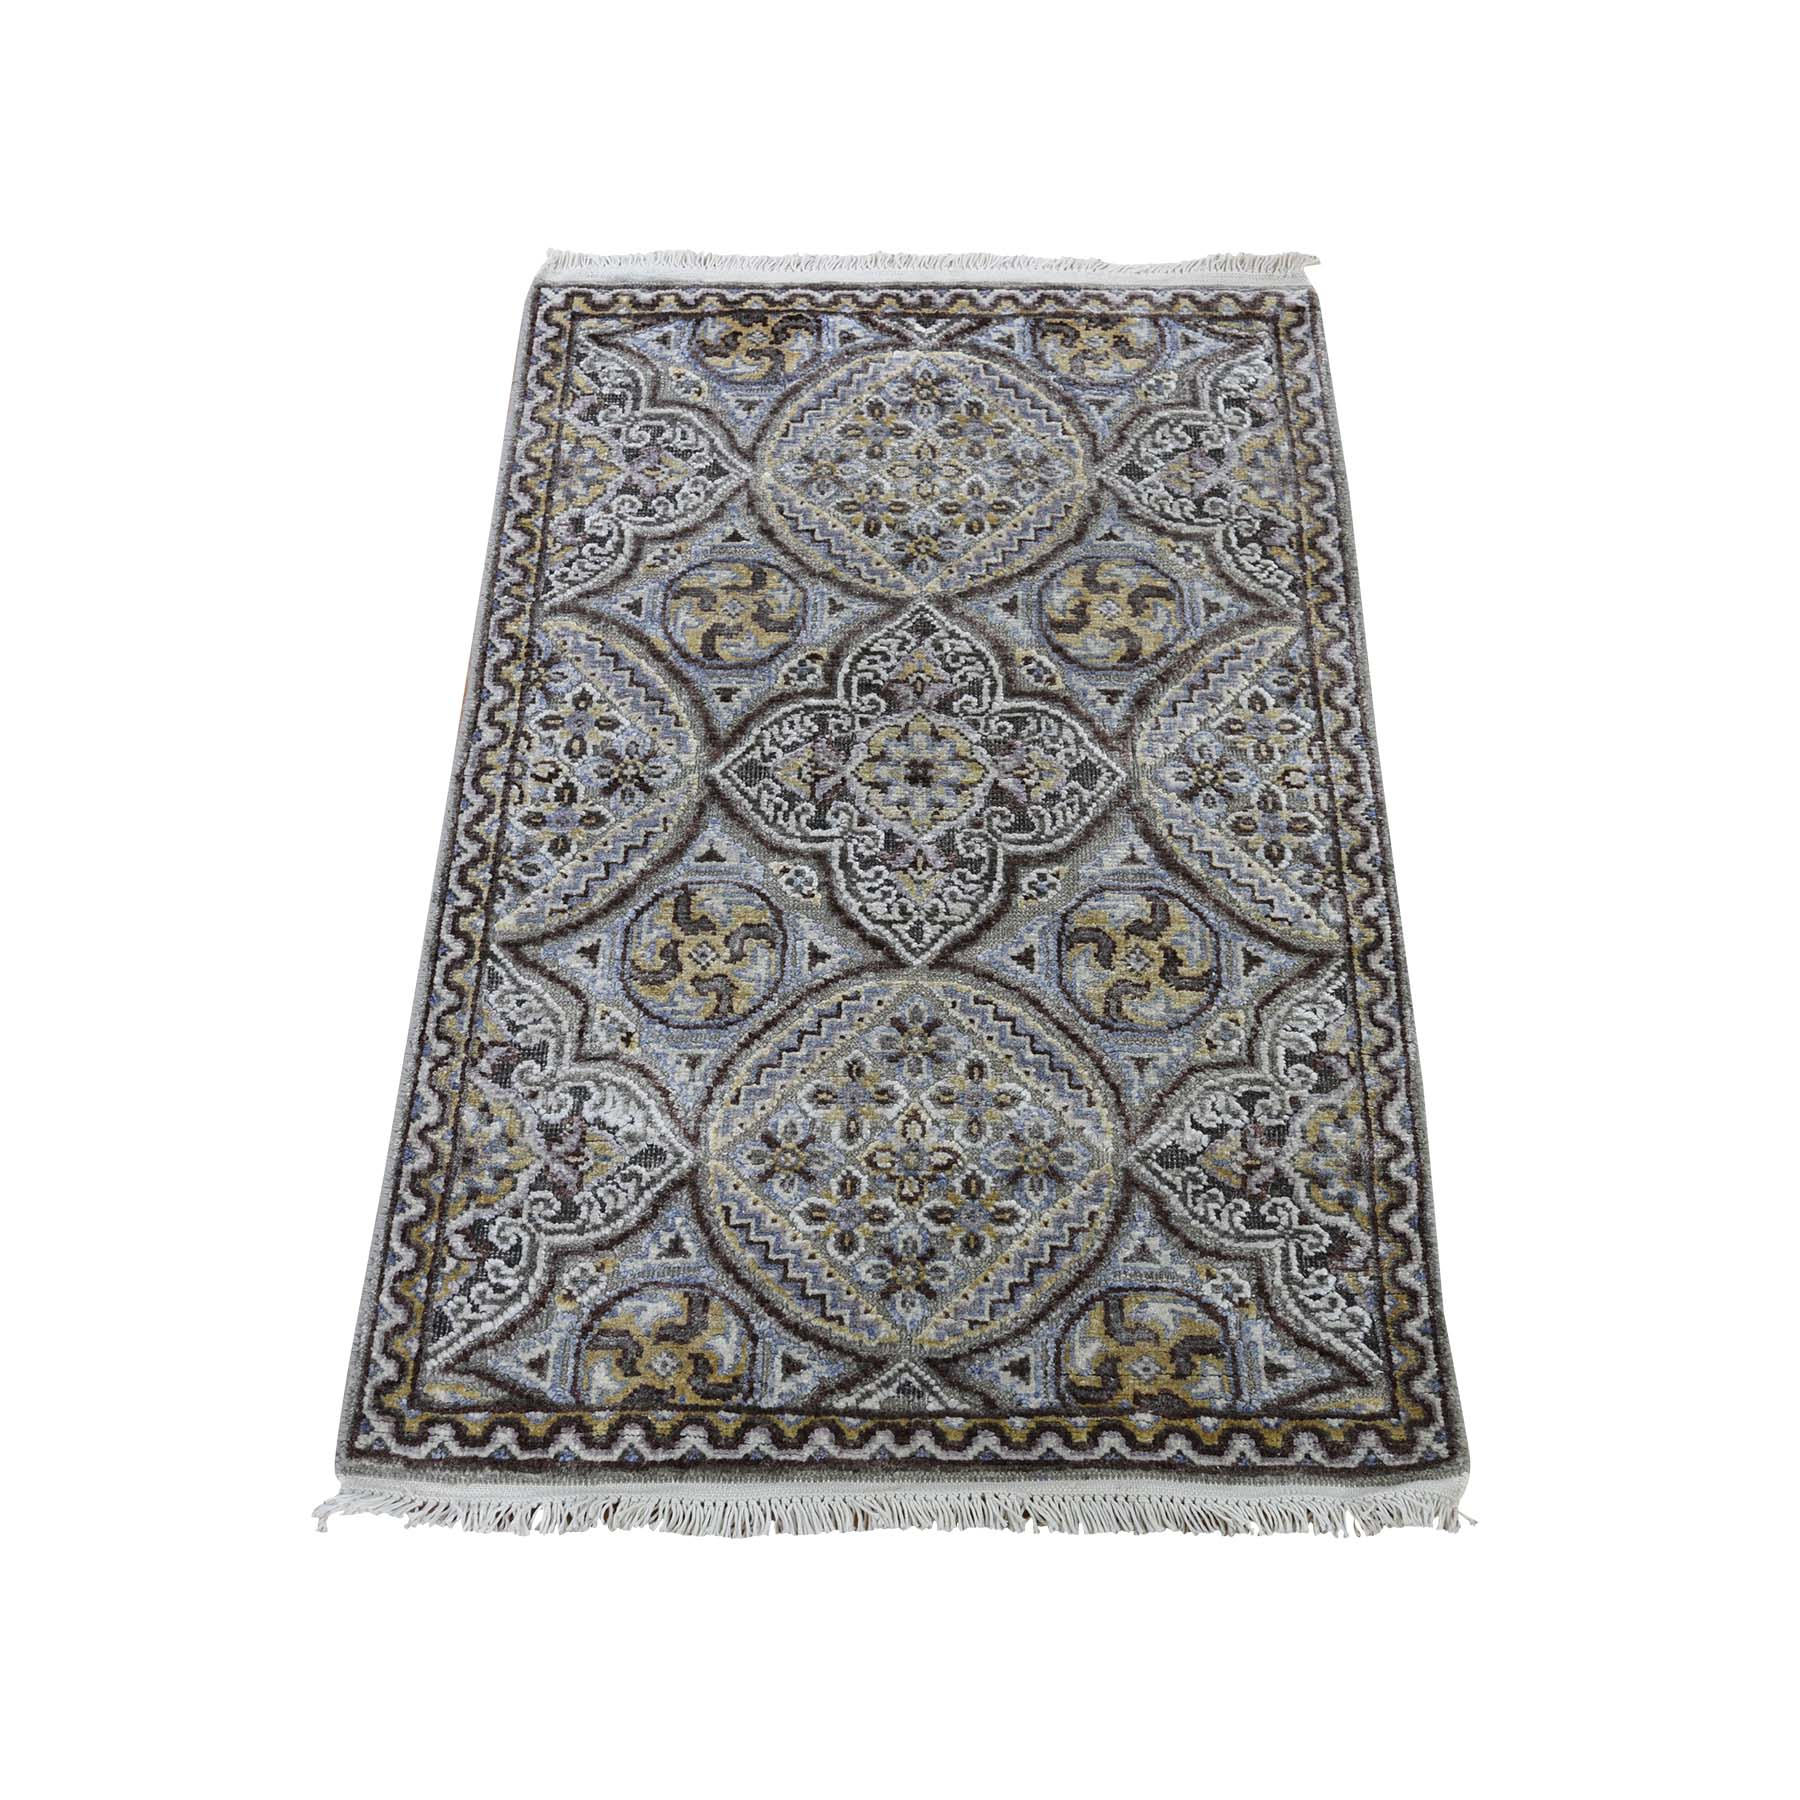 "2'1""X3'1"" Mughal Inspired Medallions Oxidized Wool And Silk Hand-Knotted Oriental Rug moadb086"